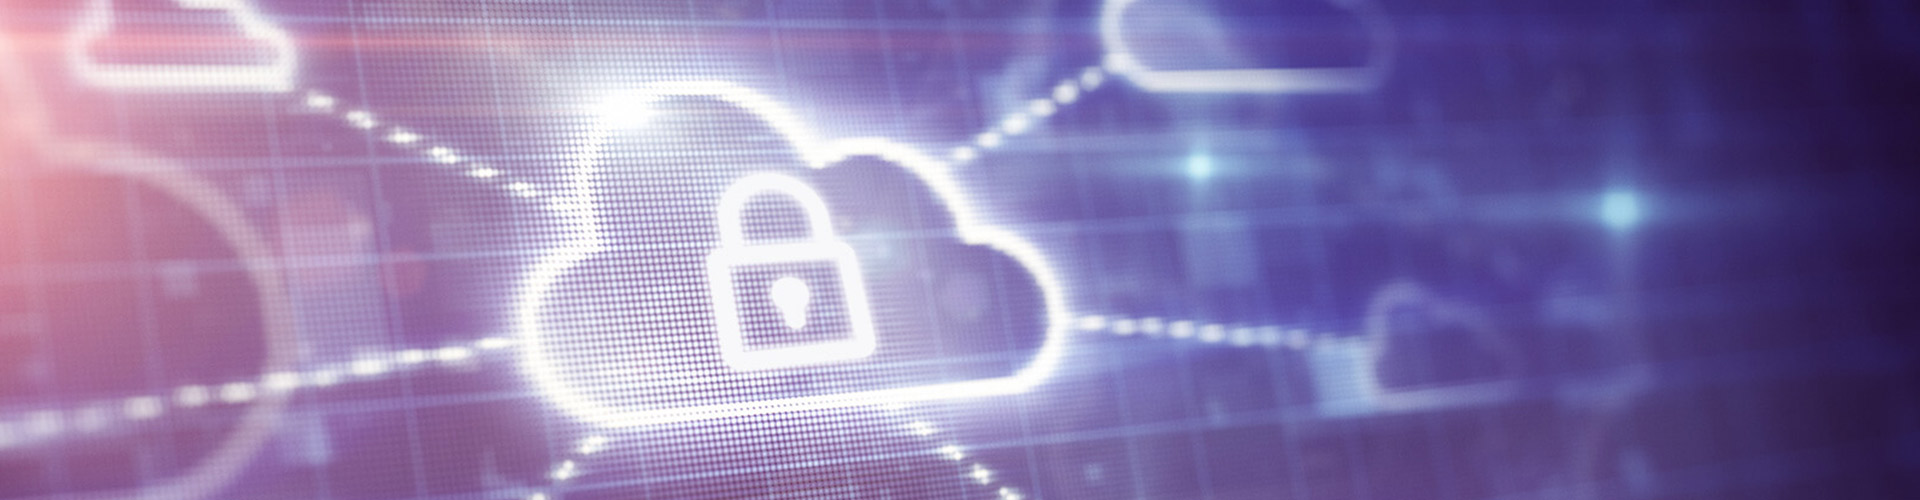 Security Services for Cloud Computing